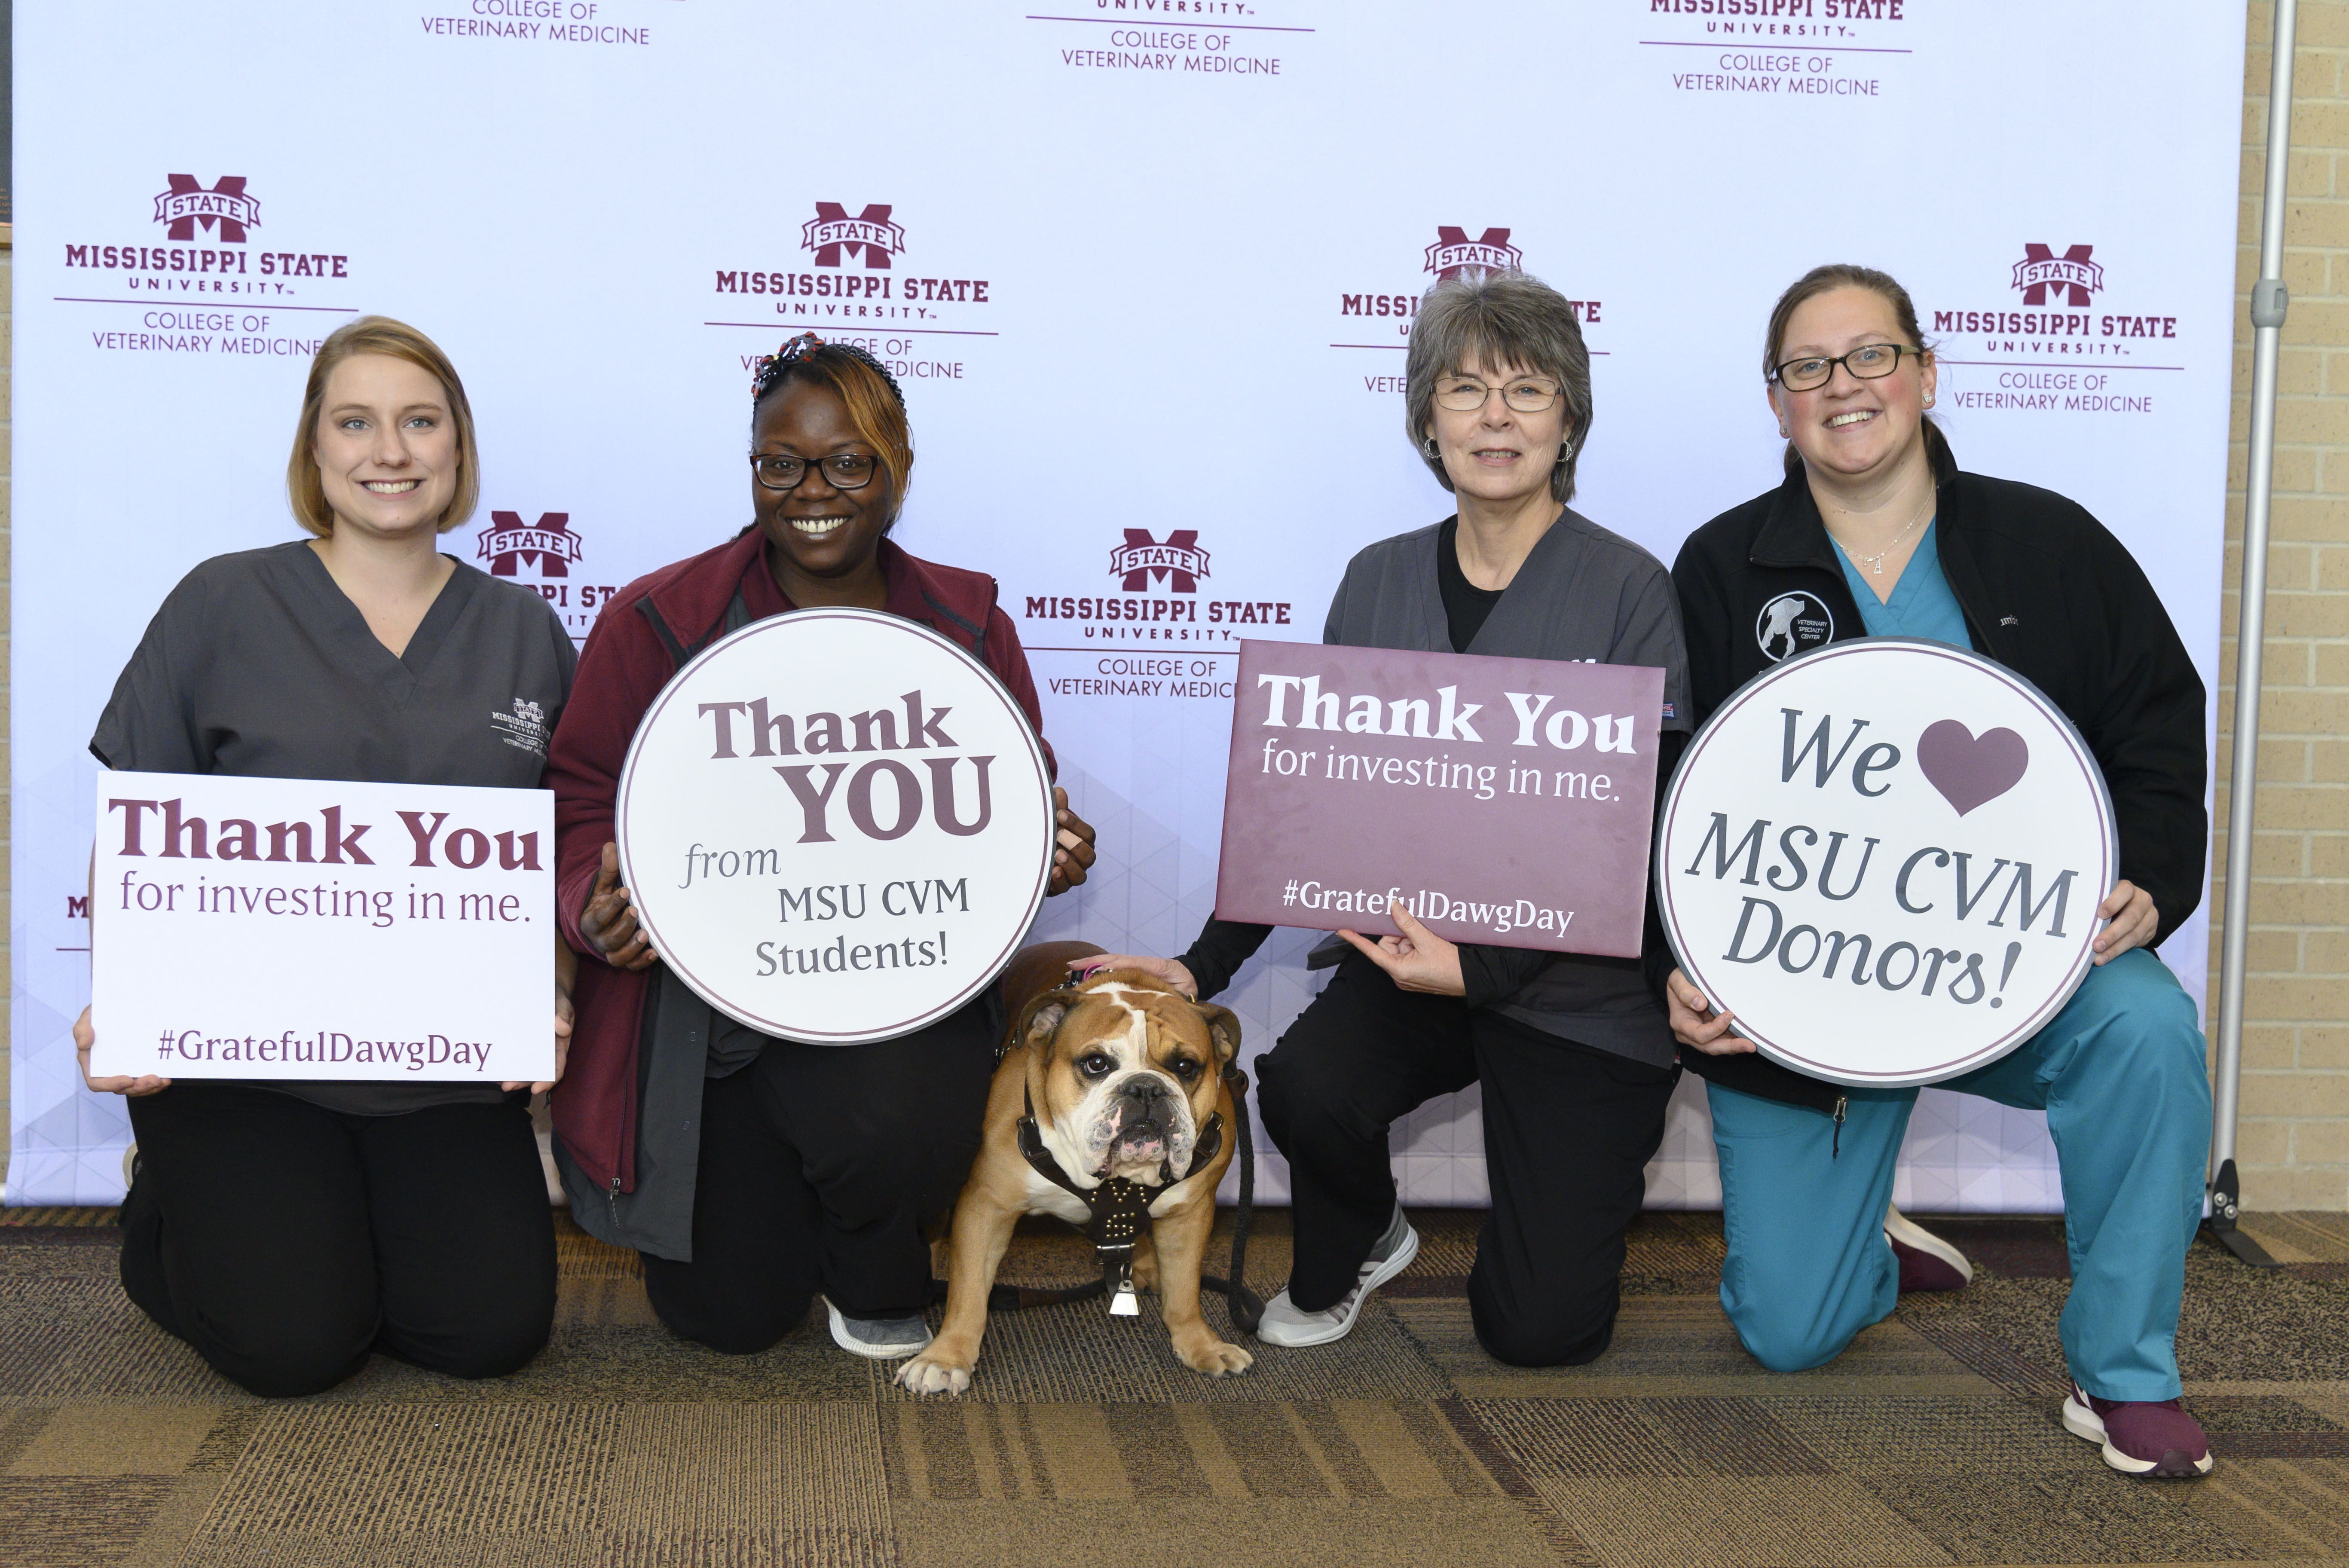 Four people pose with thank you signs and a bulldog